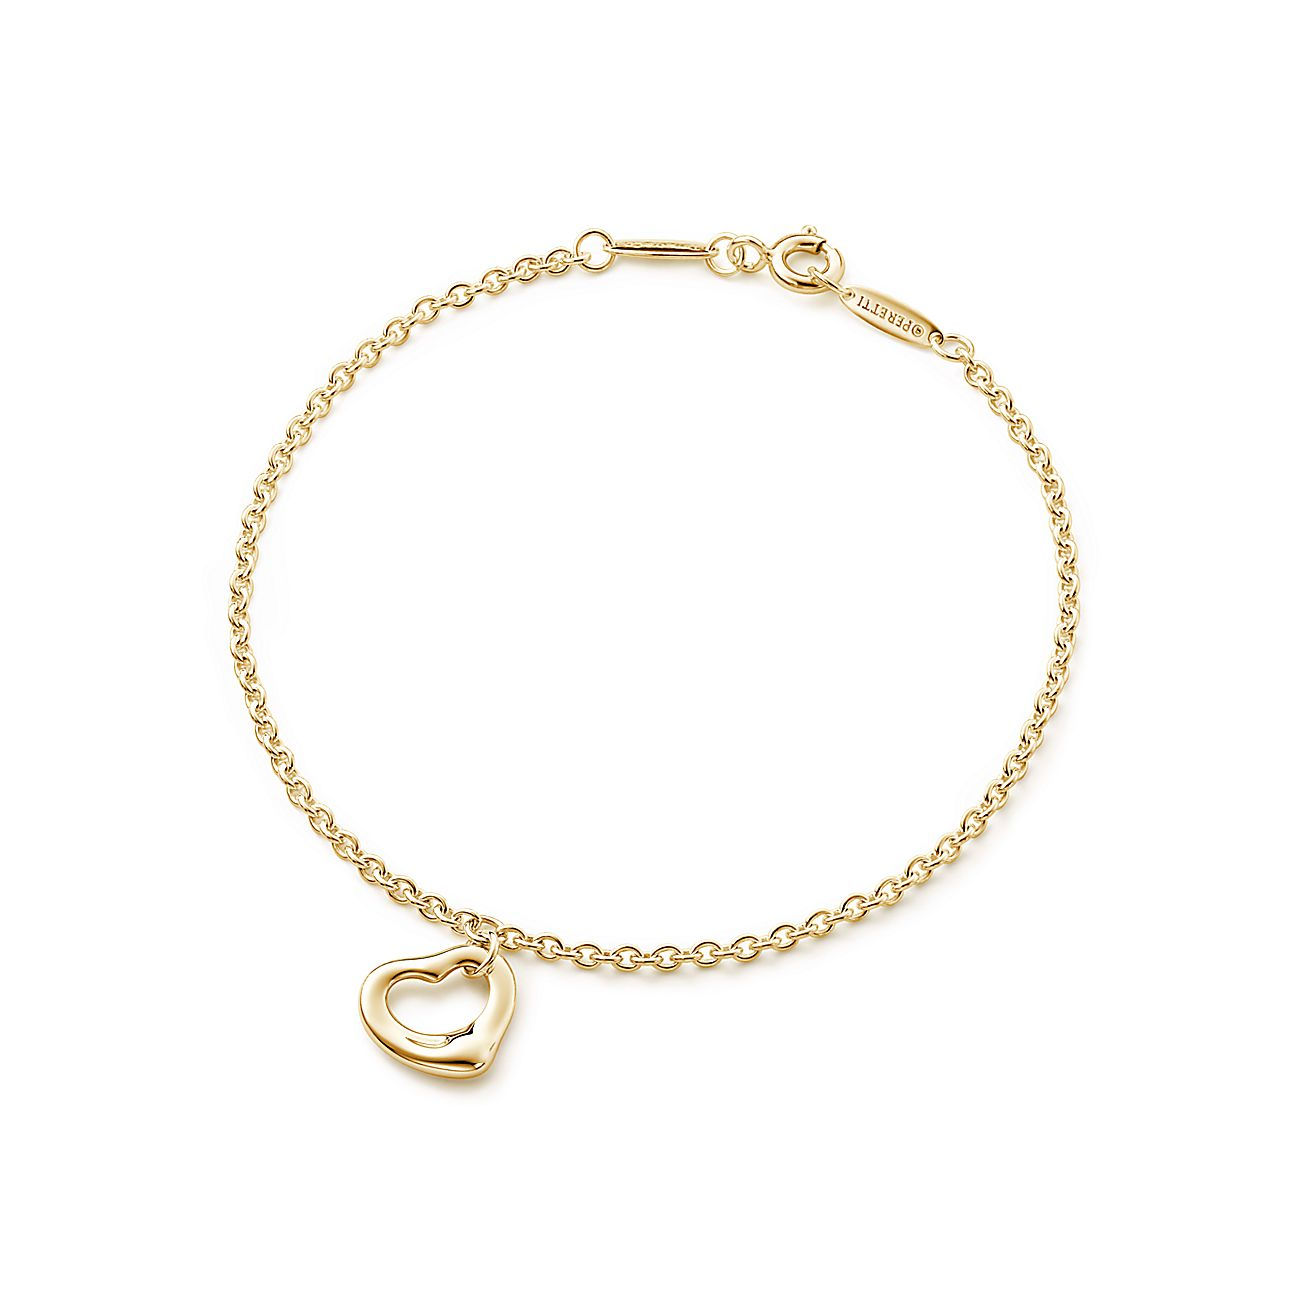 Bracelet With Hearts: Elsa Peretti® Open Heart Bracelet In 18k Gold, Large